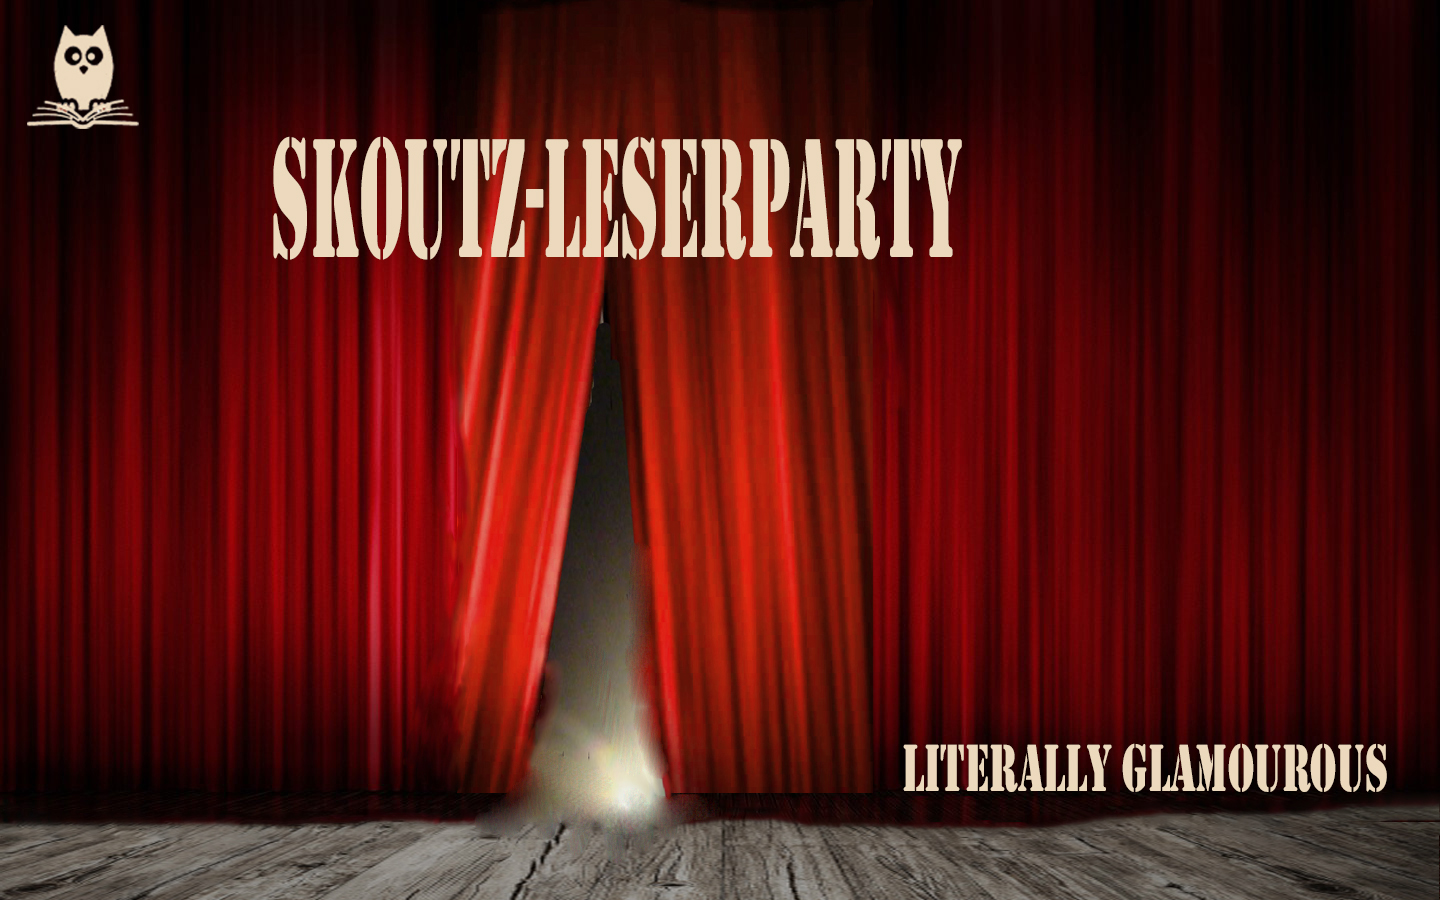 Scoutz Leserparty